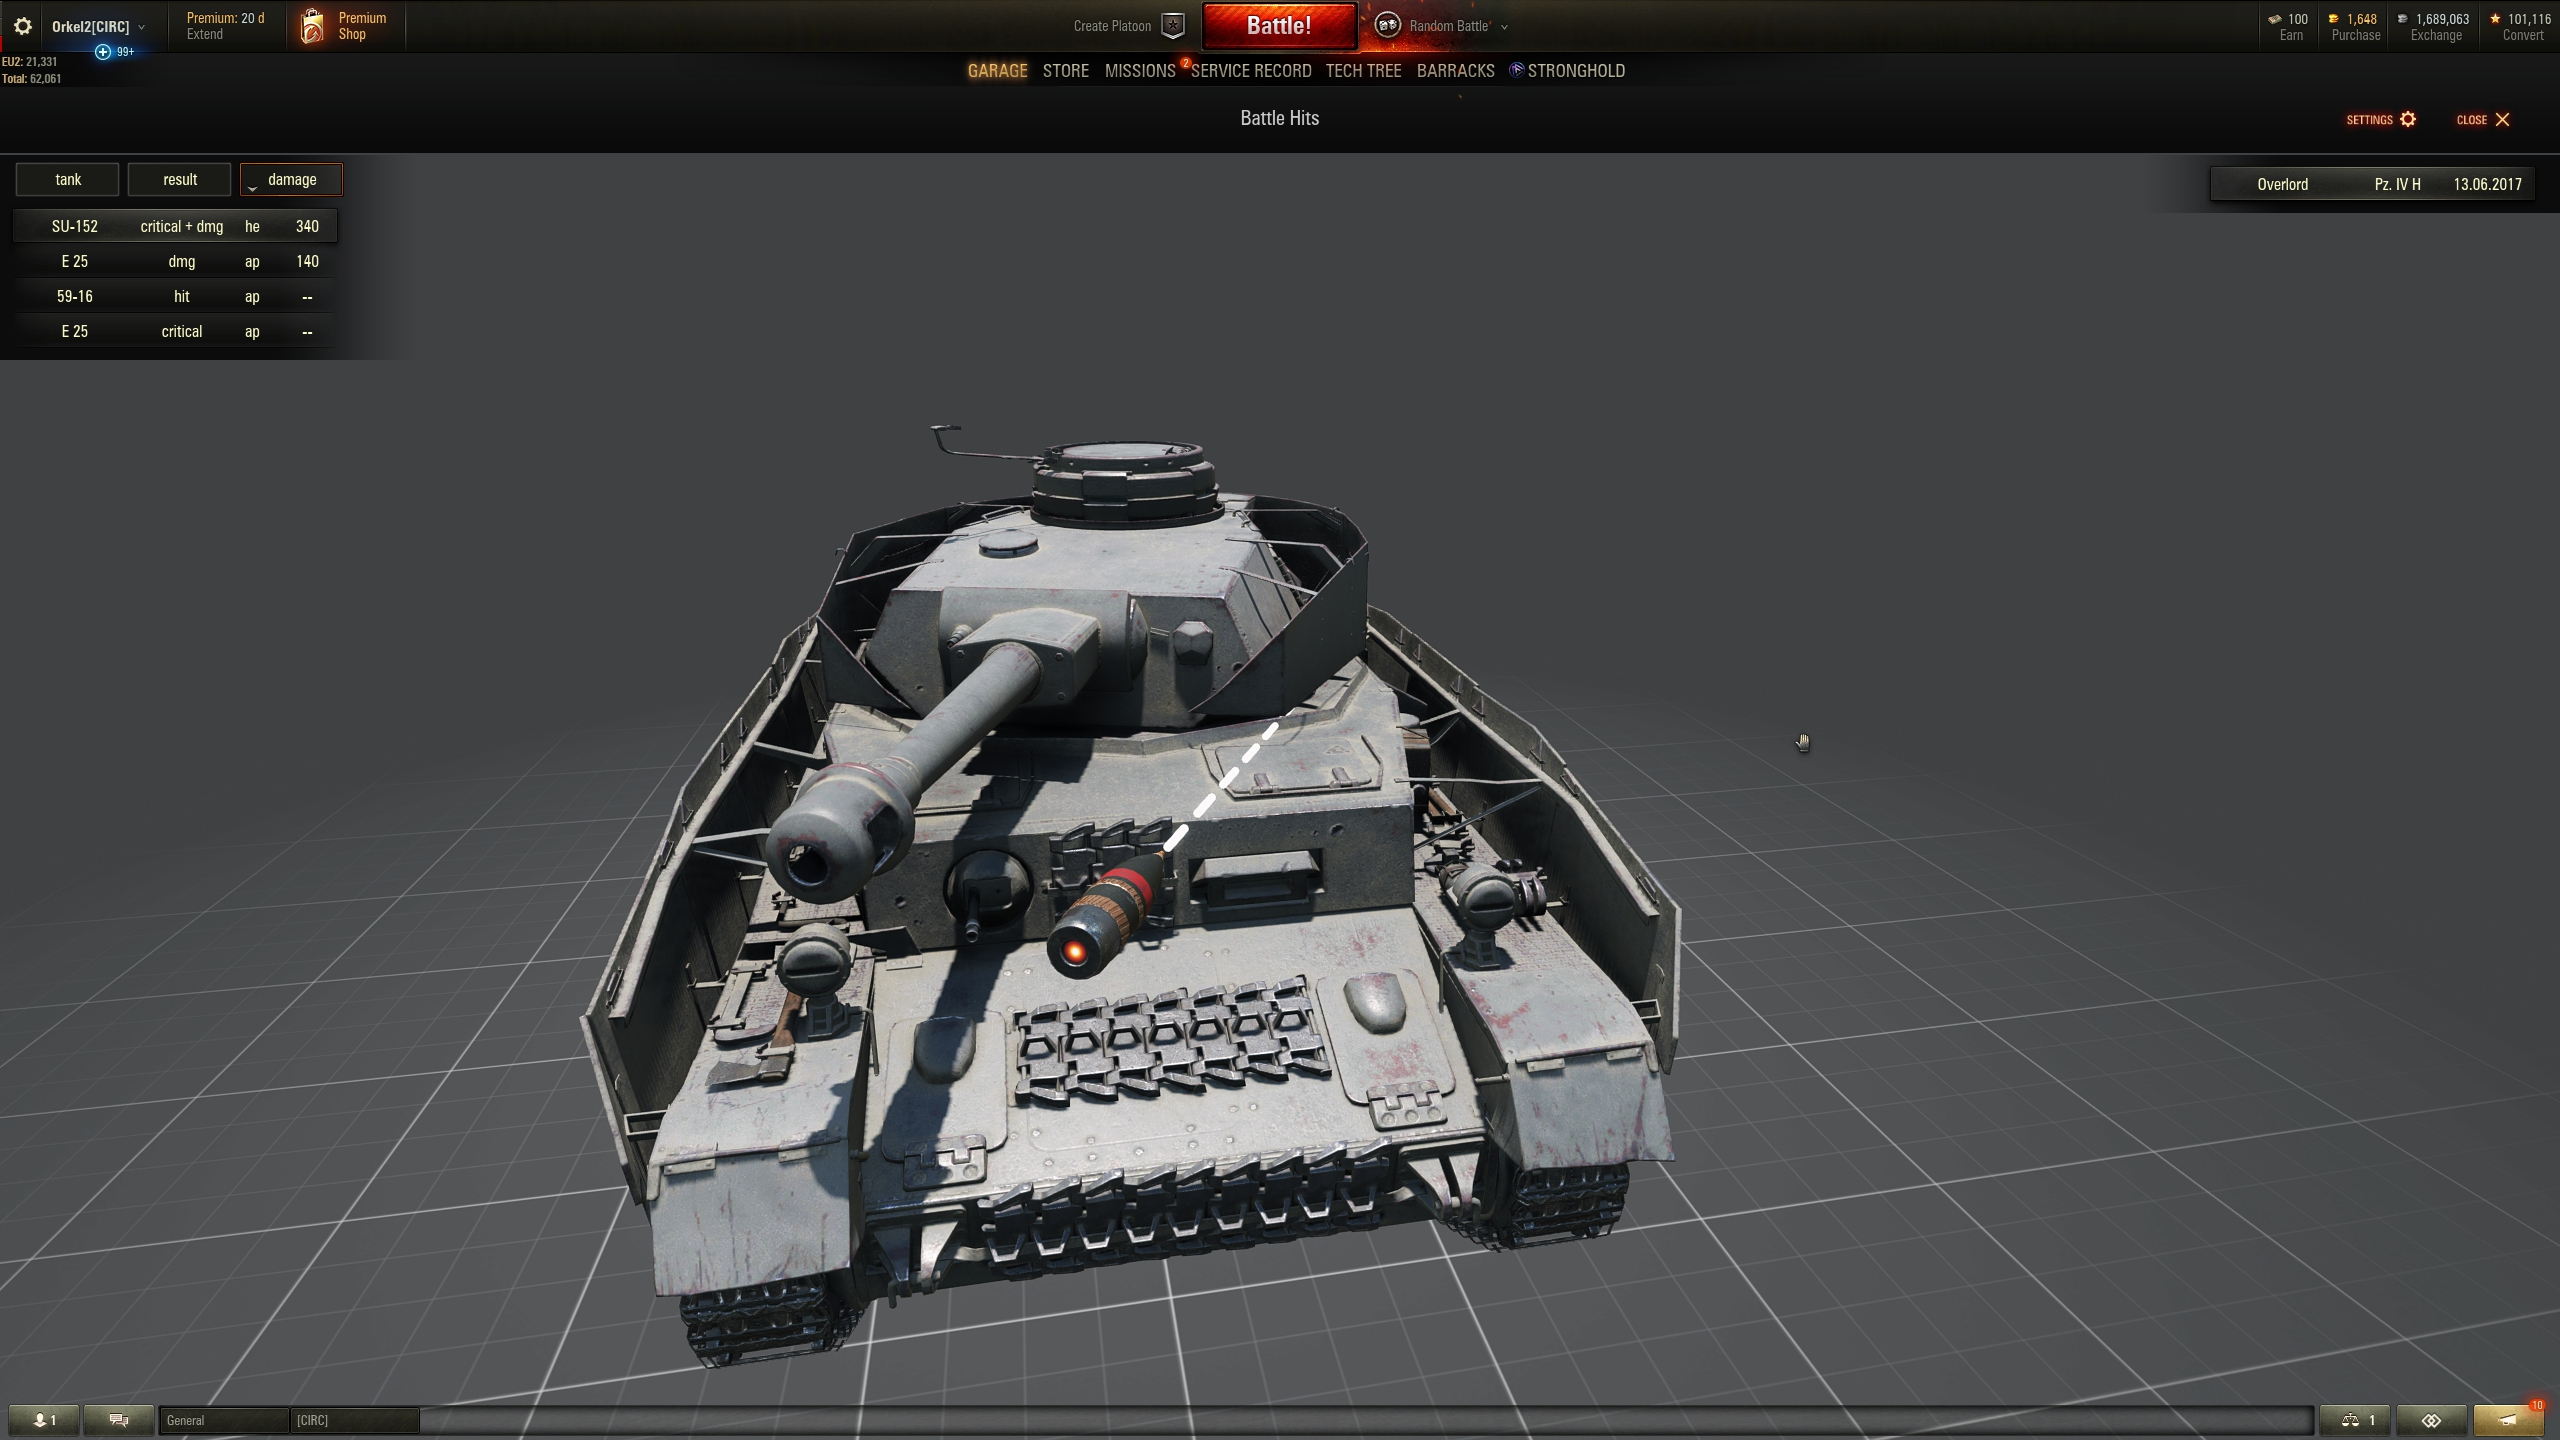 The Russian mod which allows hits to be viewed after battle